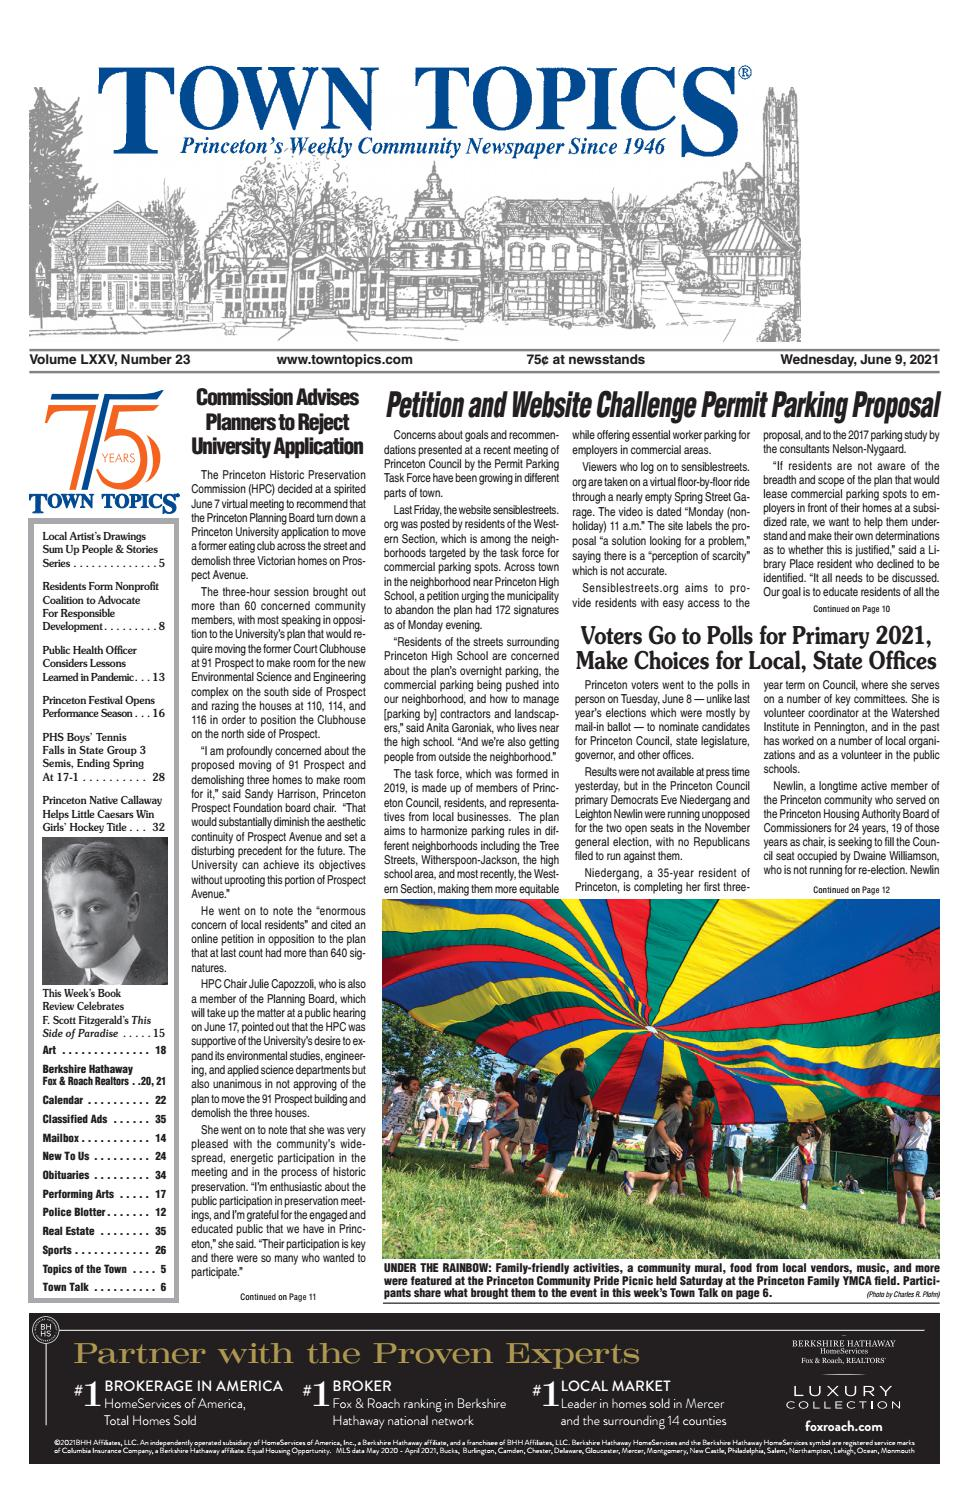 Town Topics Newspaper, June 9, 9 by Witherspoon Media Group   issuu